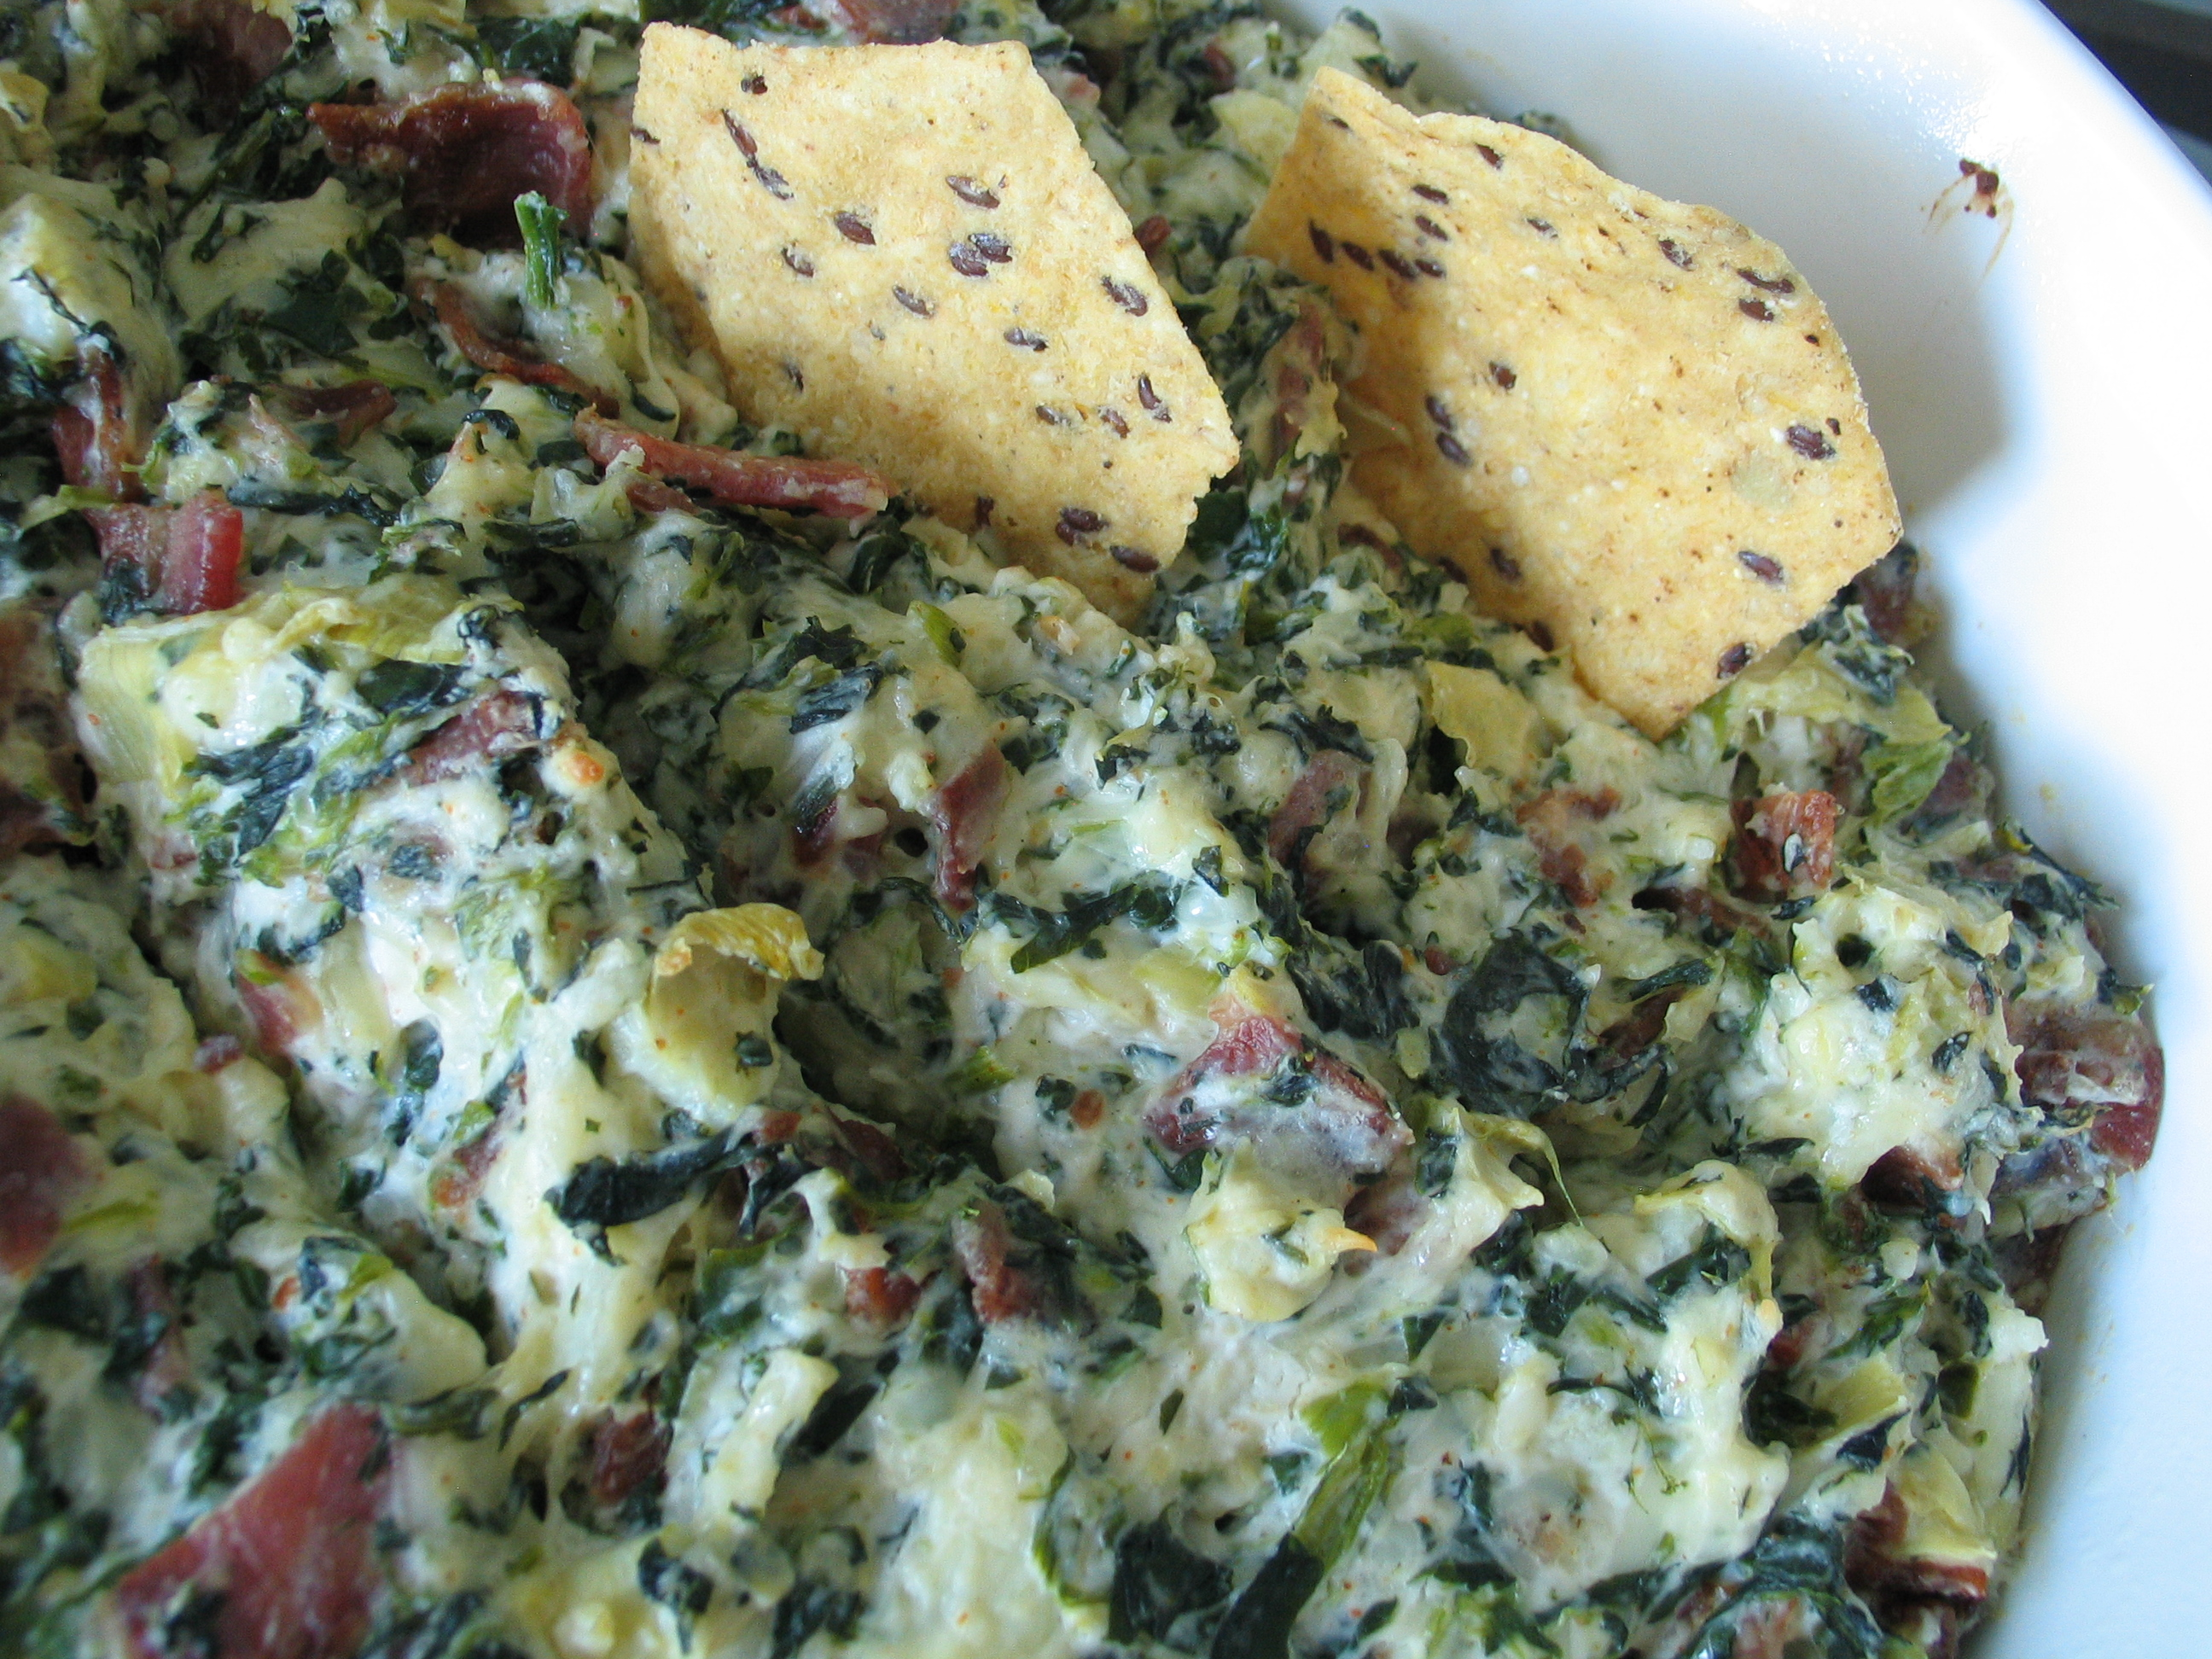 Spicy Bacon, Spinach and Artichoke Dip